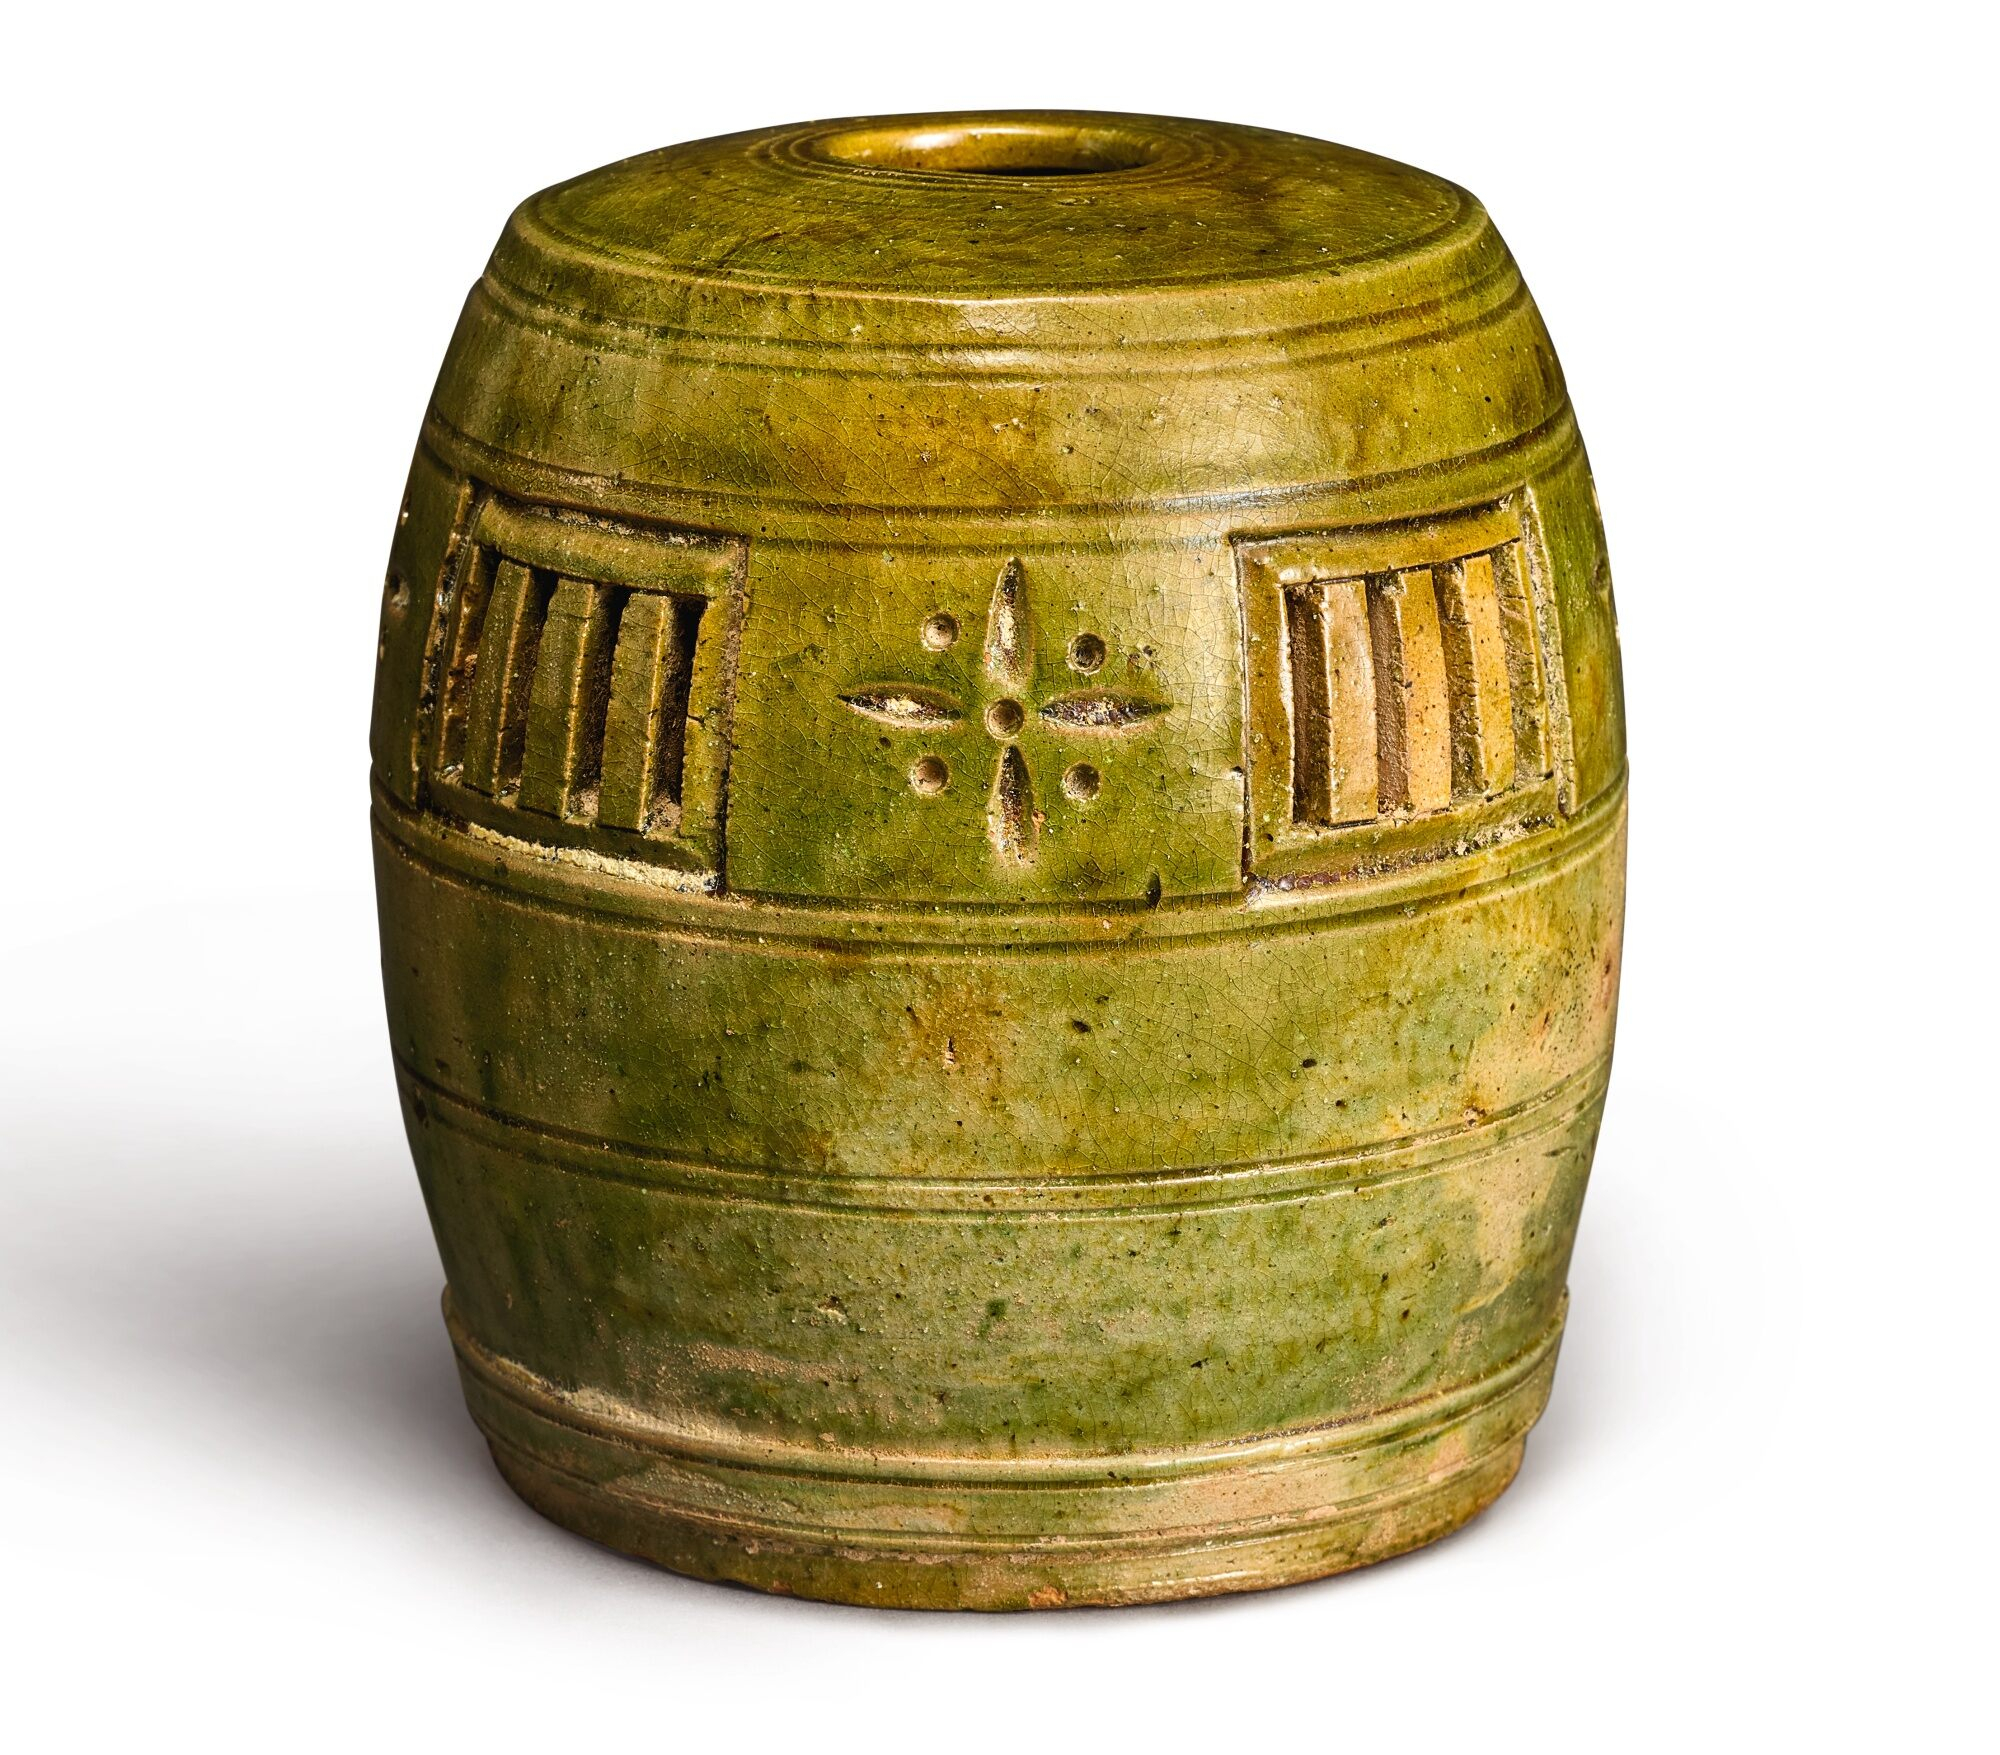 green-glazed barrel-shaped parfumier, Five Dynasties (907-960)